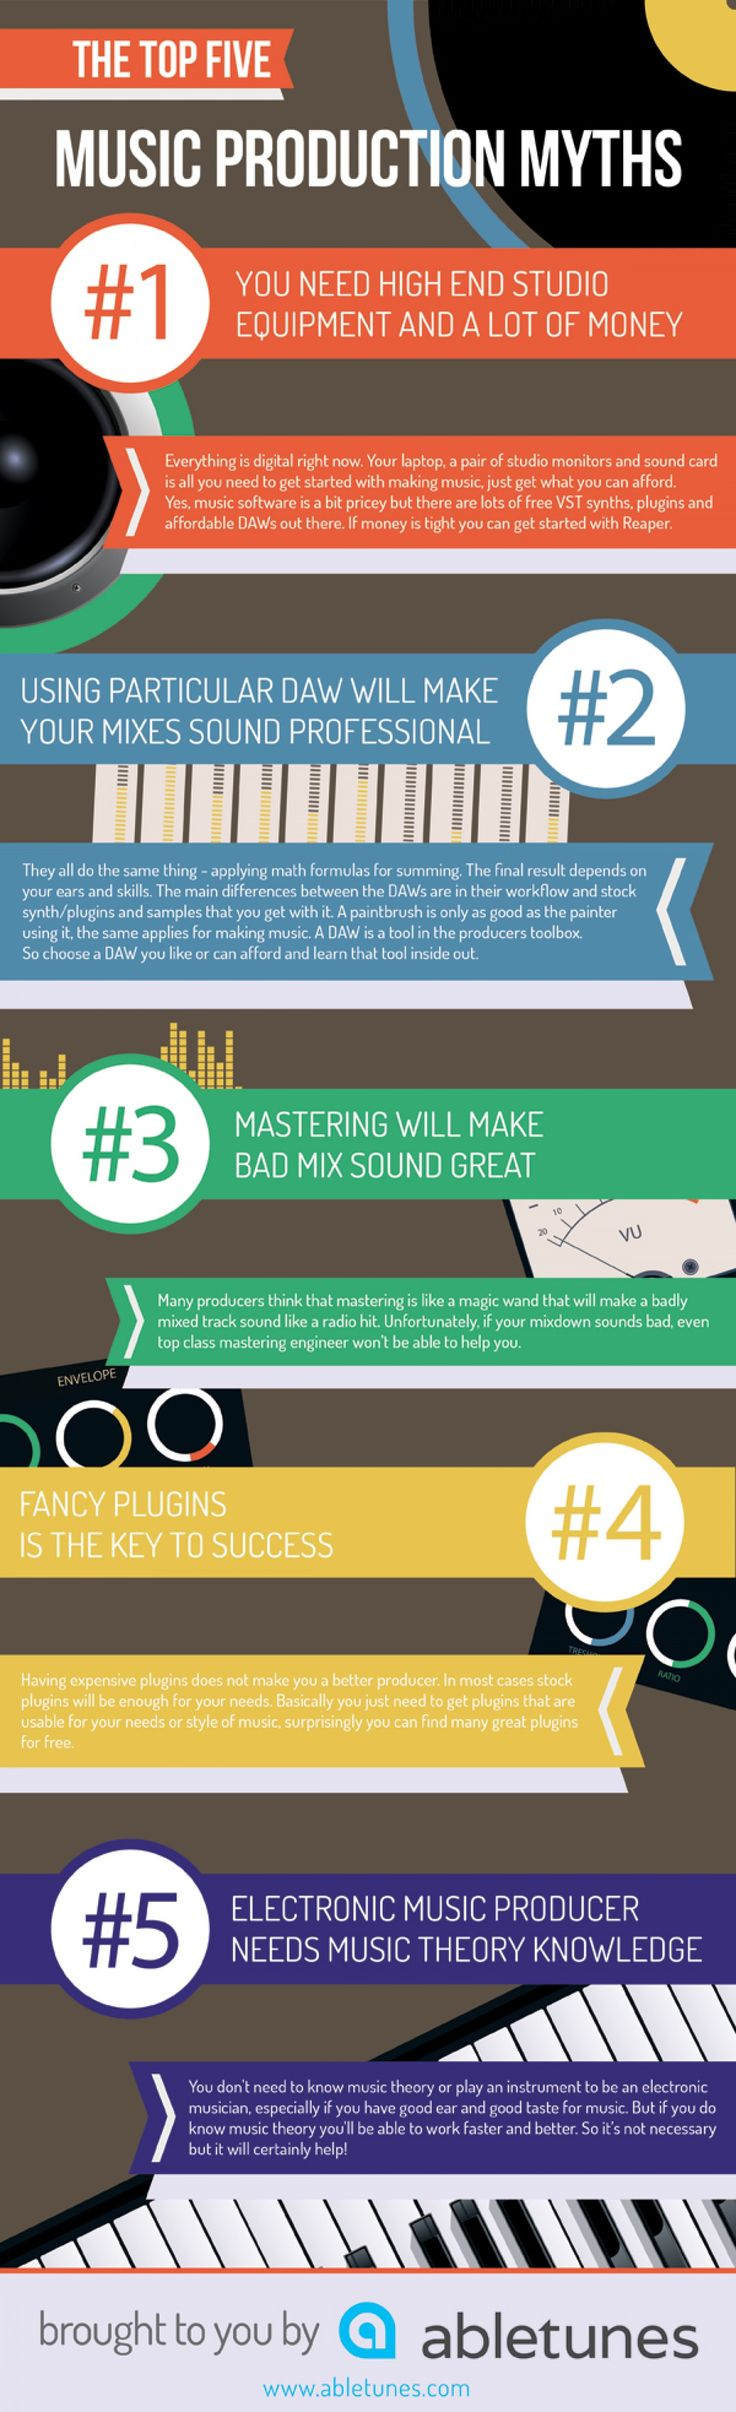 The Top Five Music Production Myths